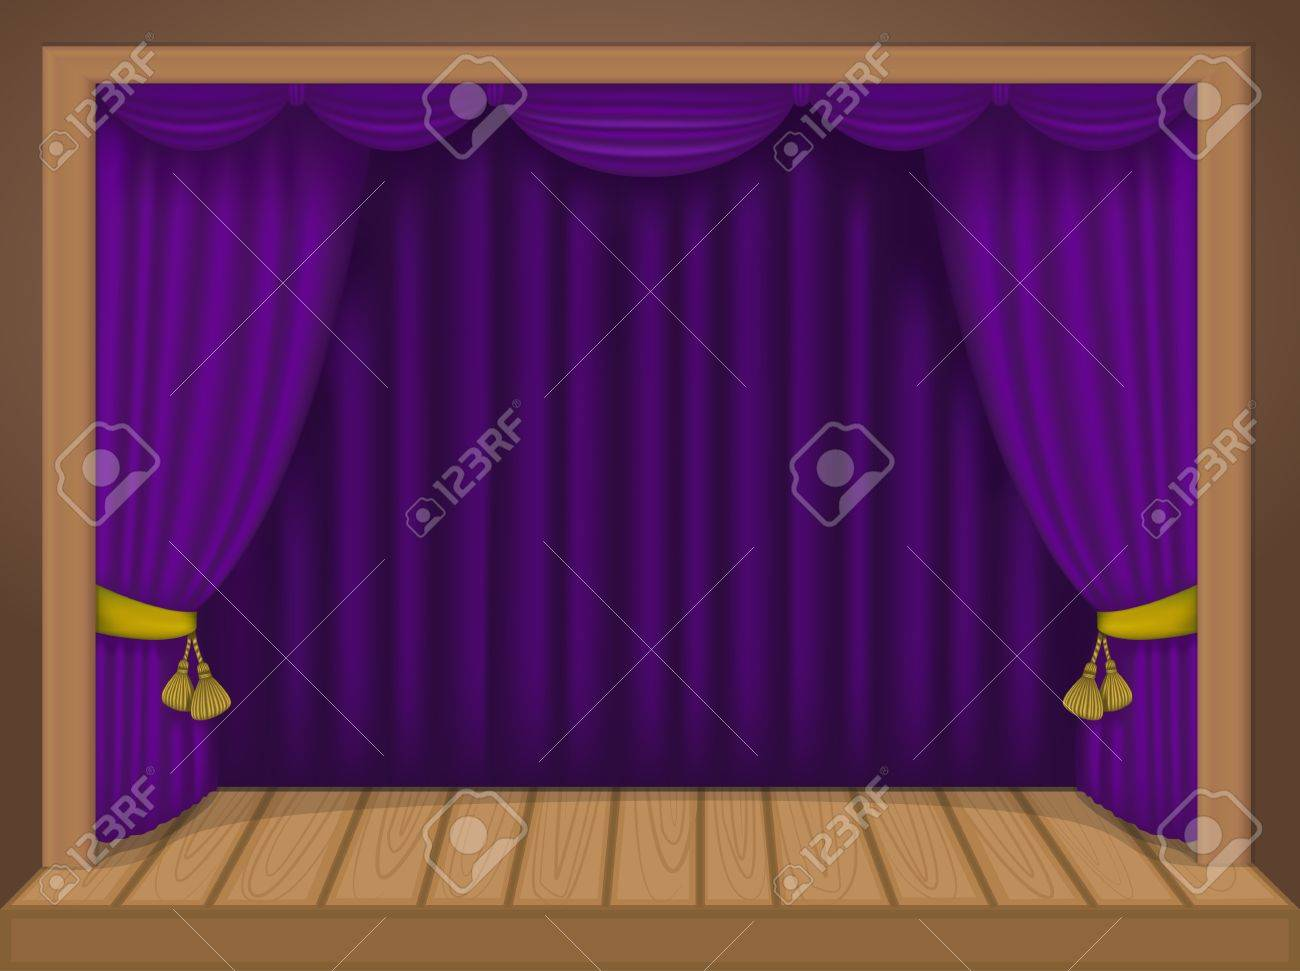 theater scene with rich draperies, curtains, wooden floor Stock Vector - 20830328